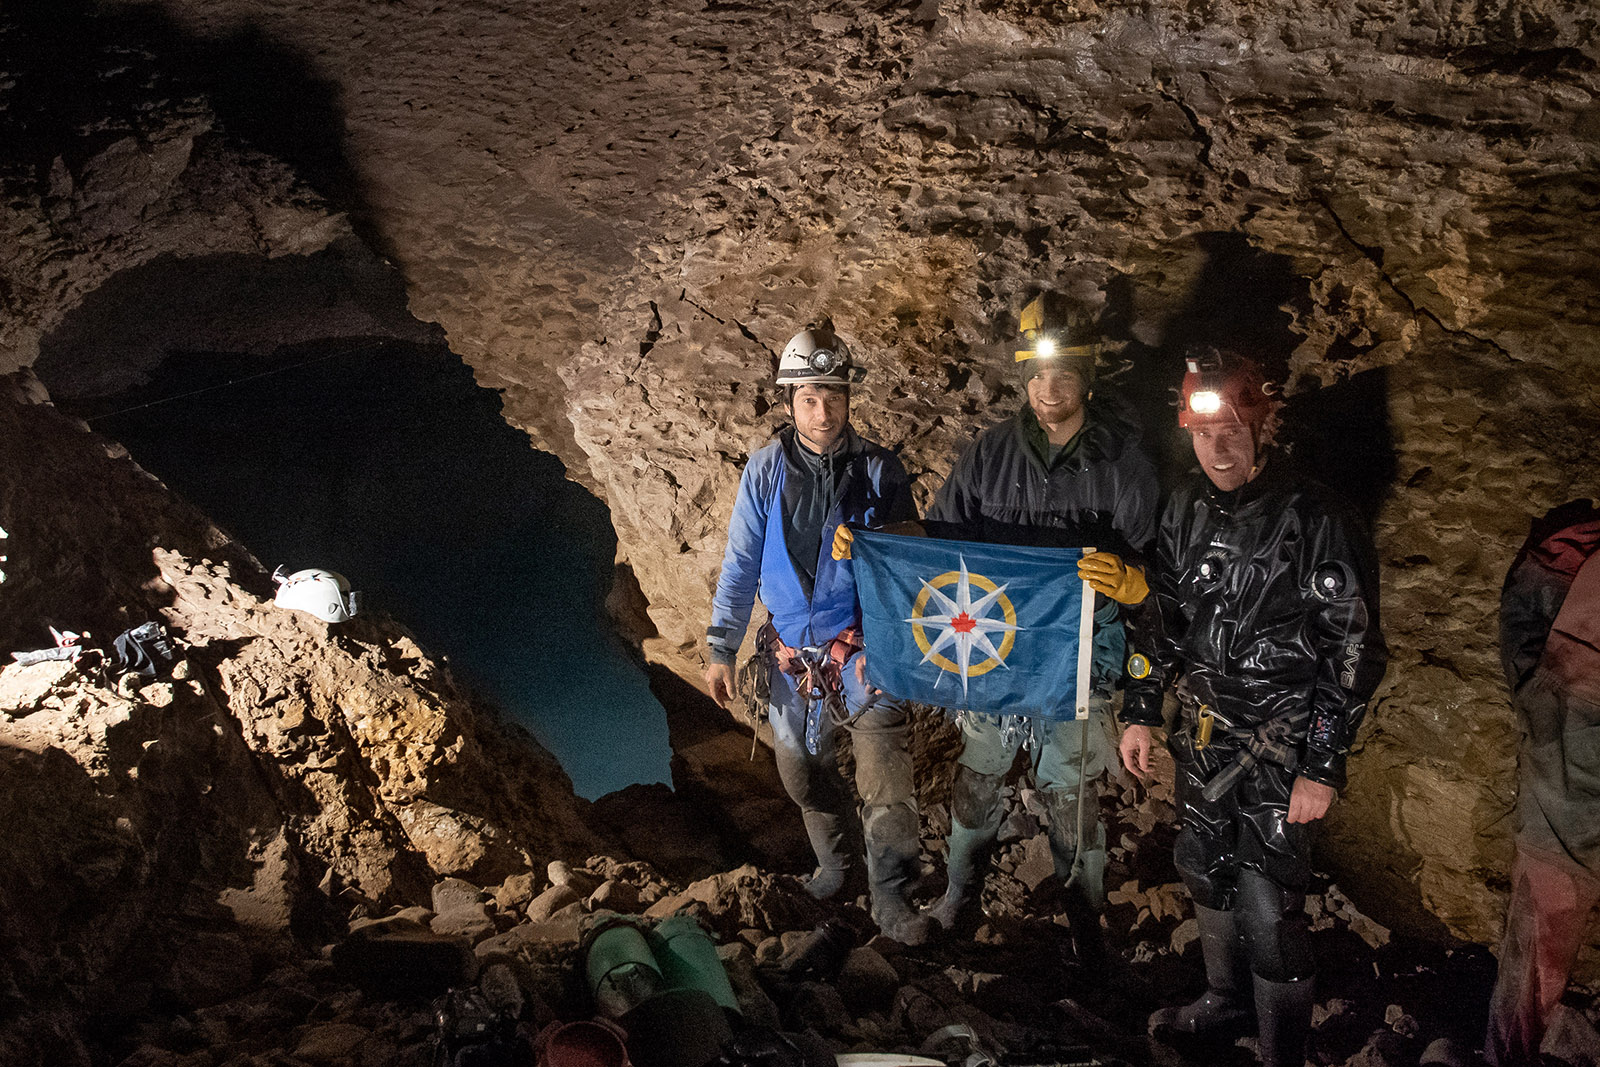 New insights from Canada's deepest cave, Bisaro Anima